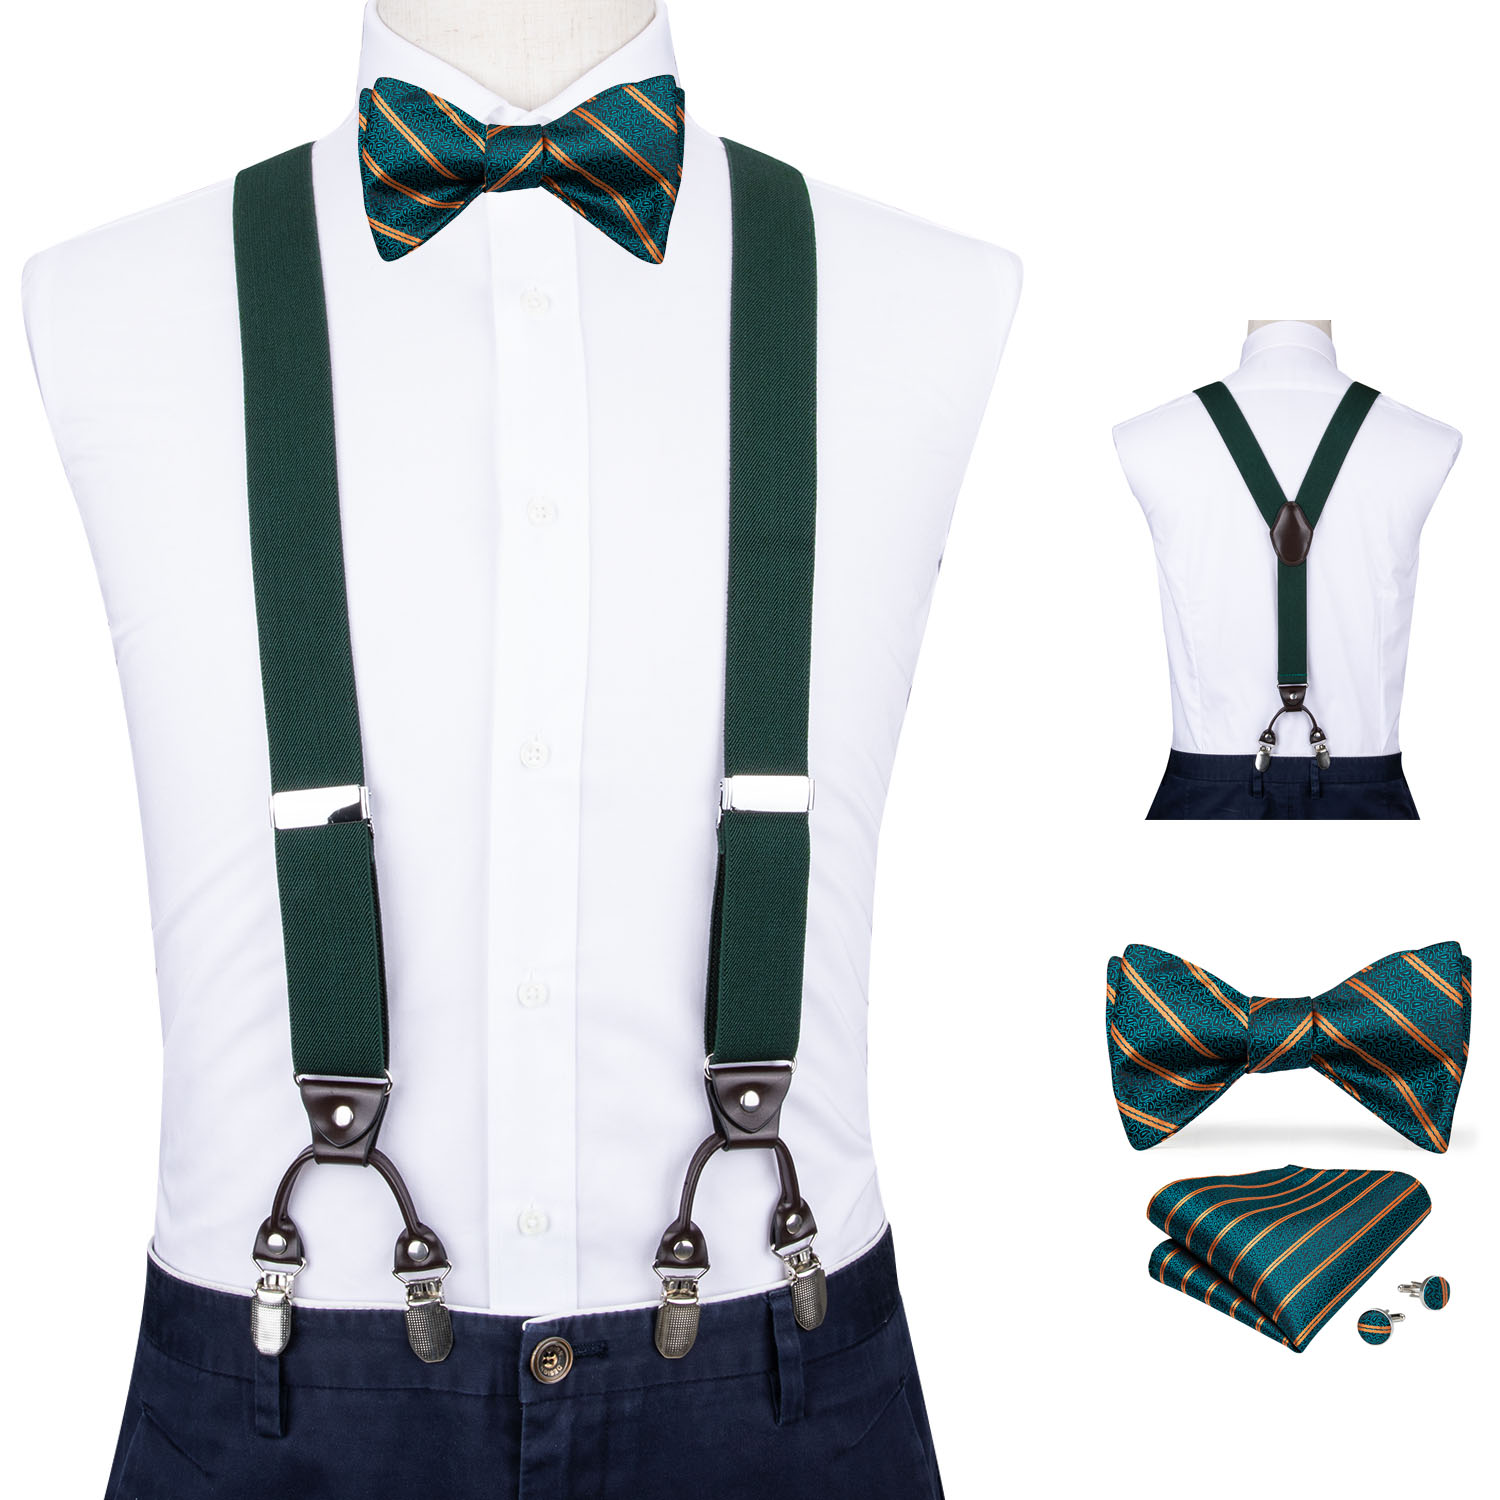 Men Dark Green Elastic Suspender Genuine Leather 6 Clips Brace Male Vintage Wedding Party Bow Tie Hanky Cufflinks Set DiBanGu